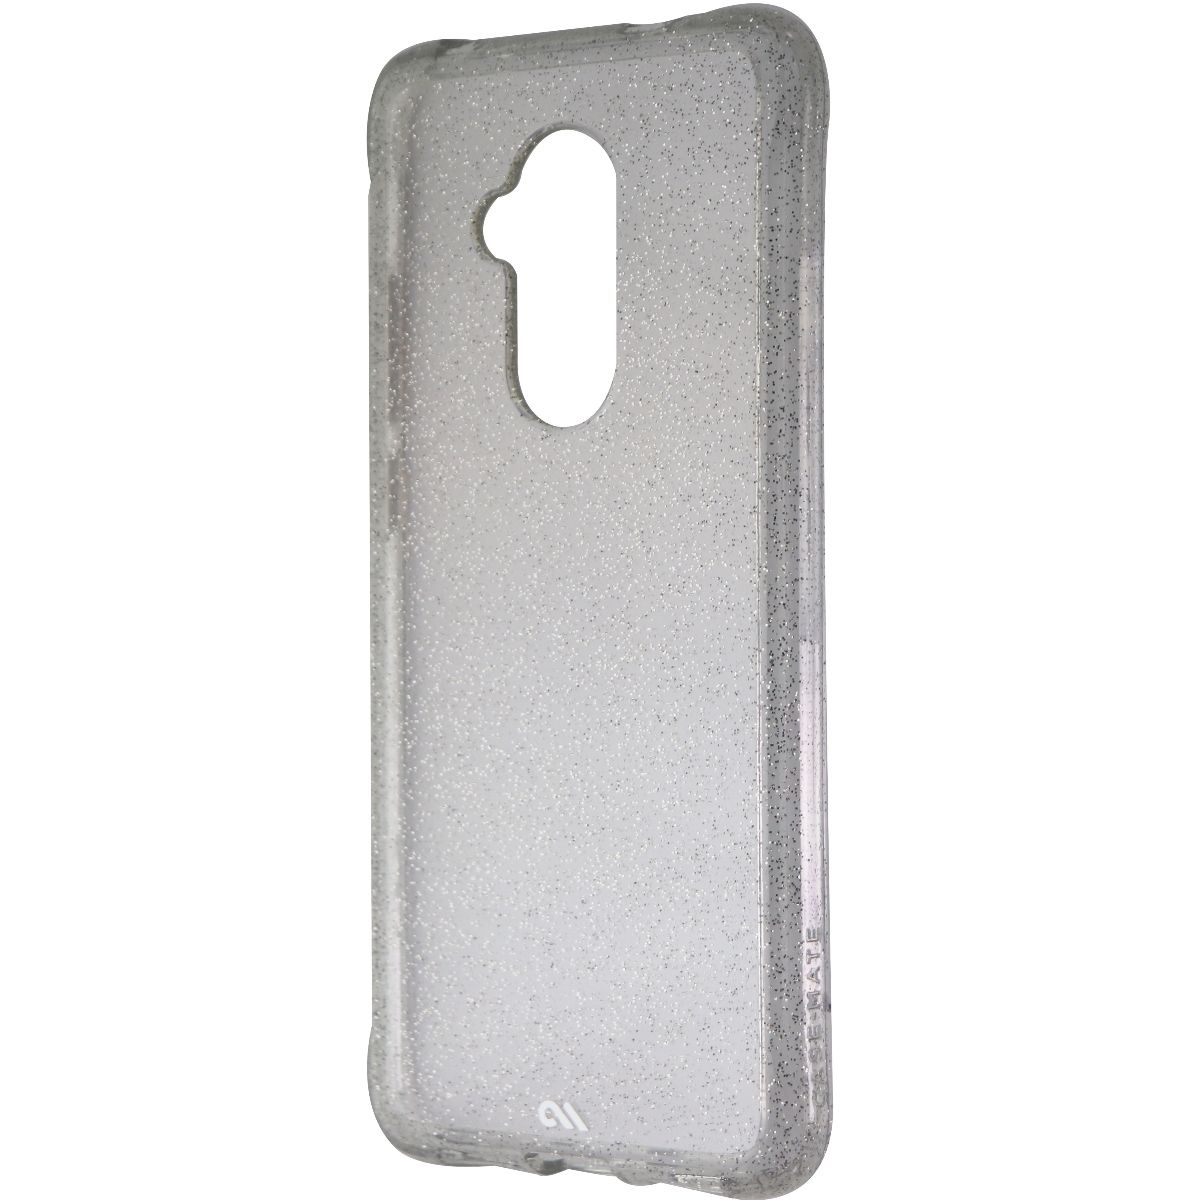 Case-Mate Sheer Crystal Case for T-Mobile Revvl 2 Plus - Clear/Silver Glitter